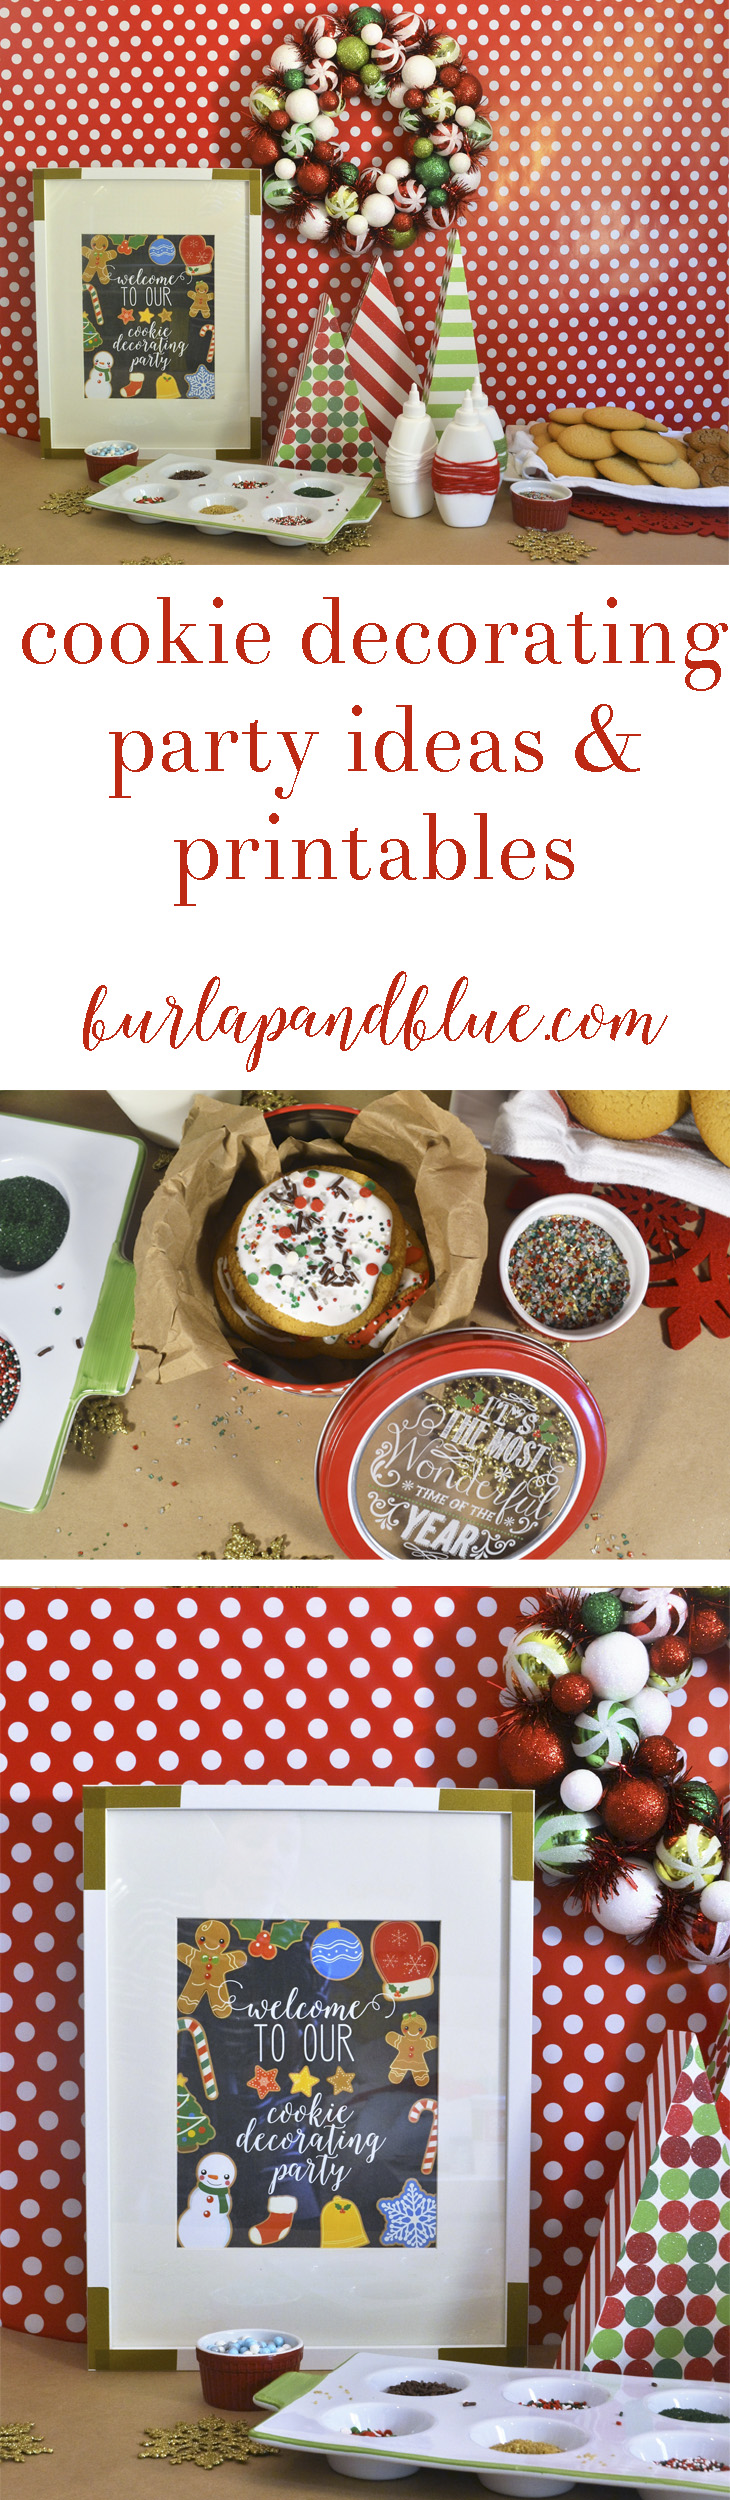 Cookie decorating party ideas - Need A Fun And Easy Kids Christmas Party Idea This Cookie Decorating Party Features Ideas